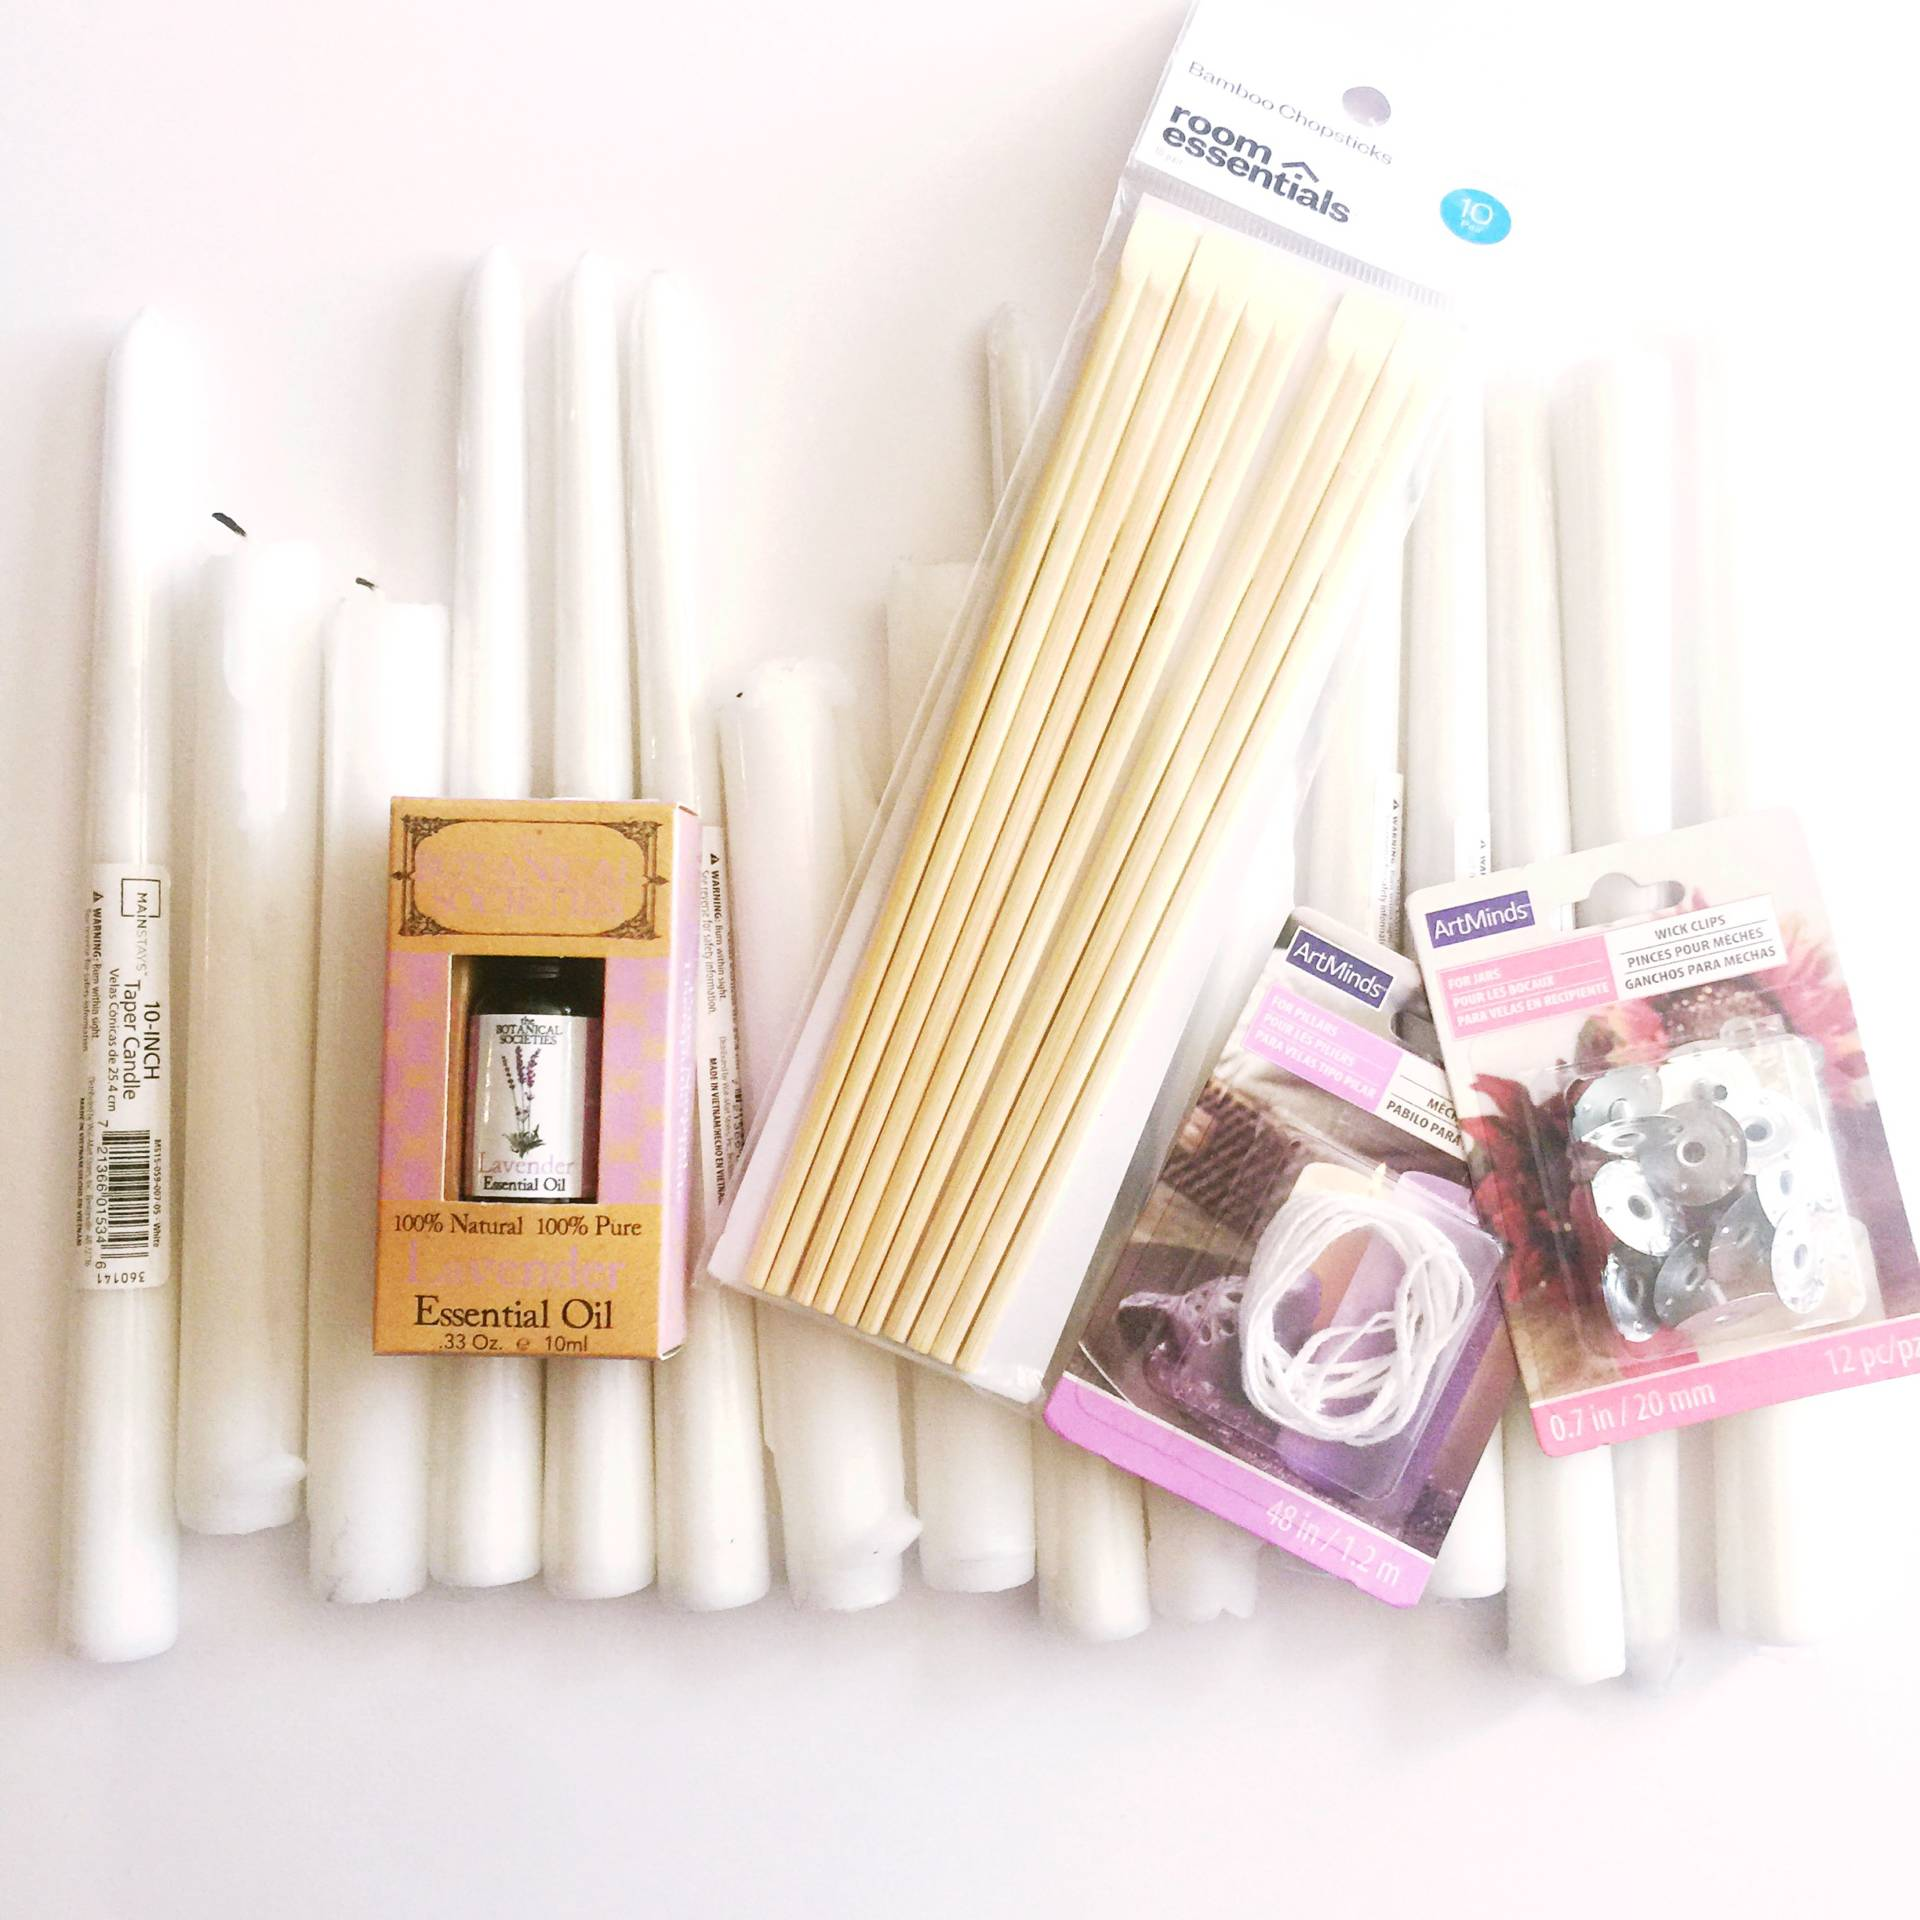 DIY candle making supplies: wicks, metal bases, essential oils, chopsticks, and wax